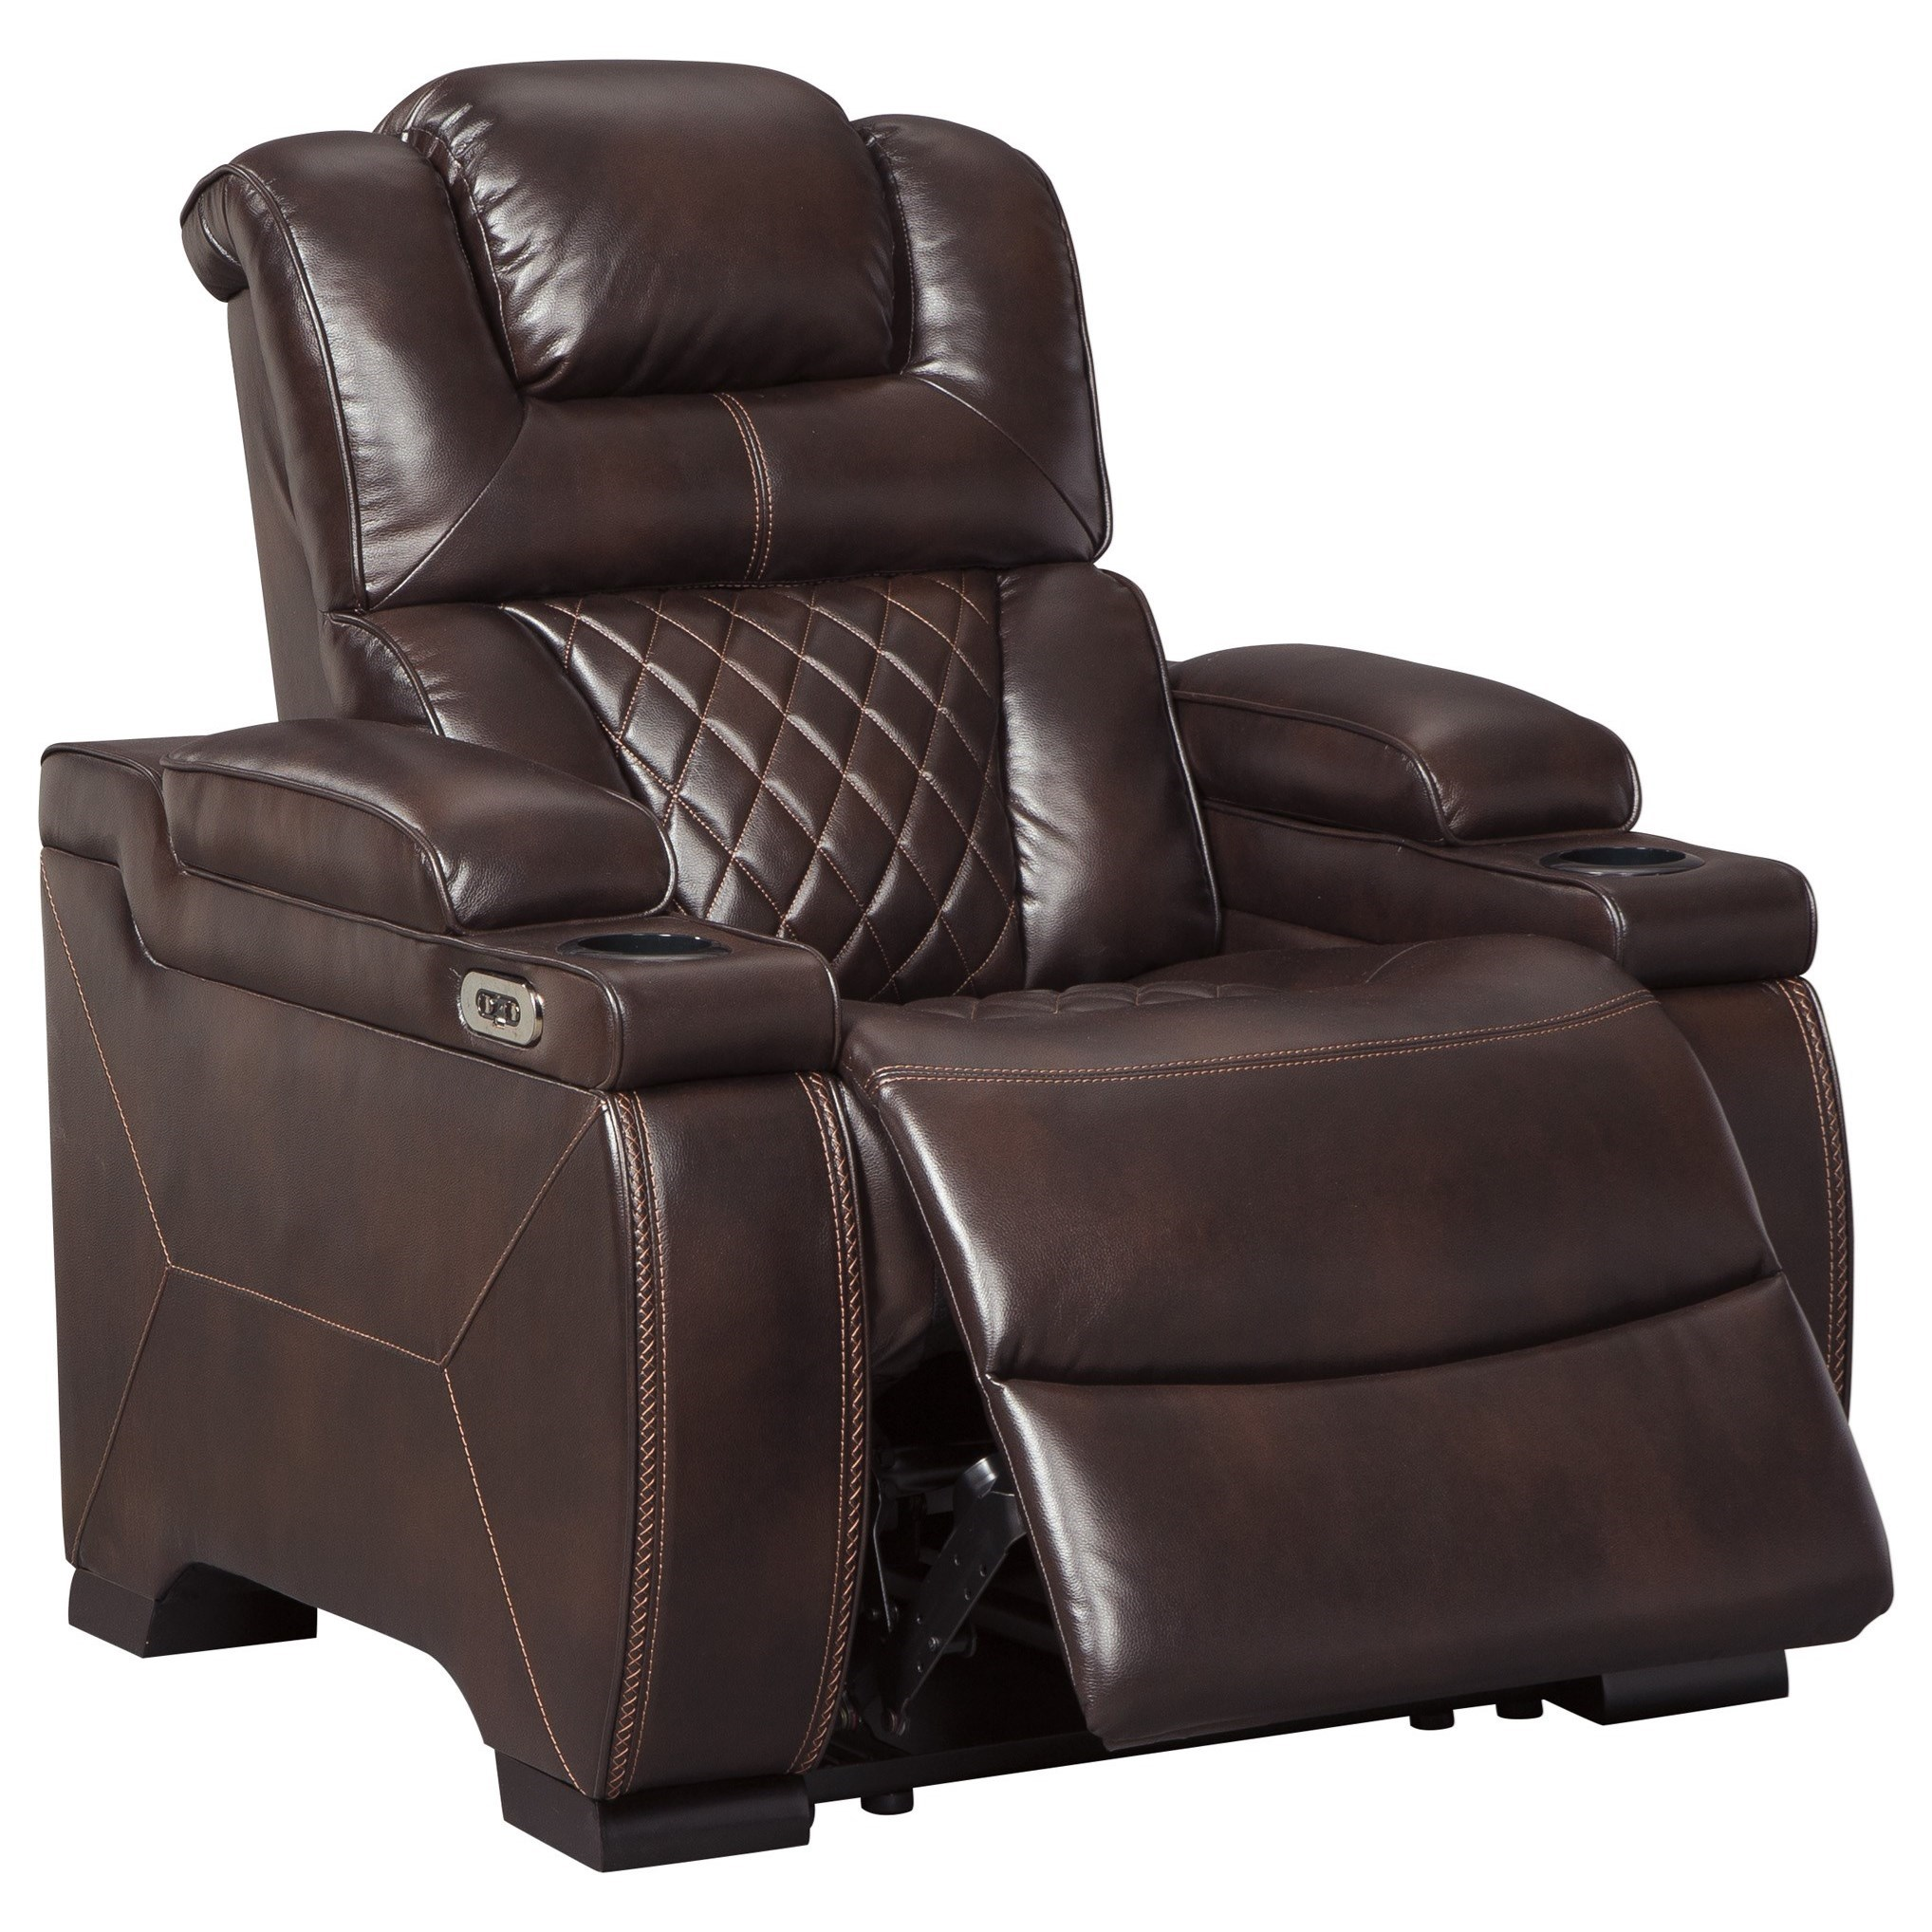 Signature Design By Ashley Warnerton Power Recliner With